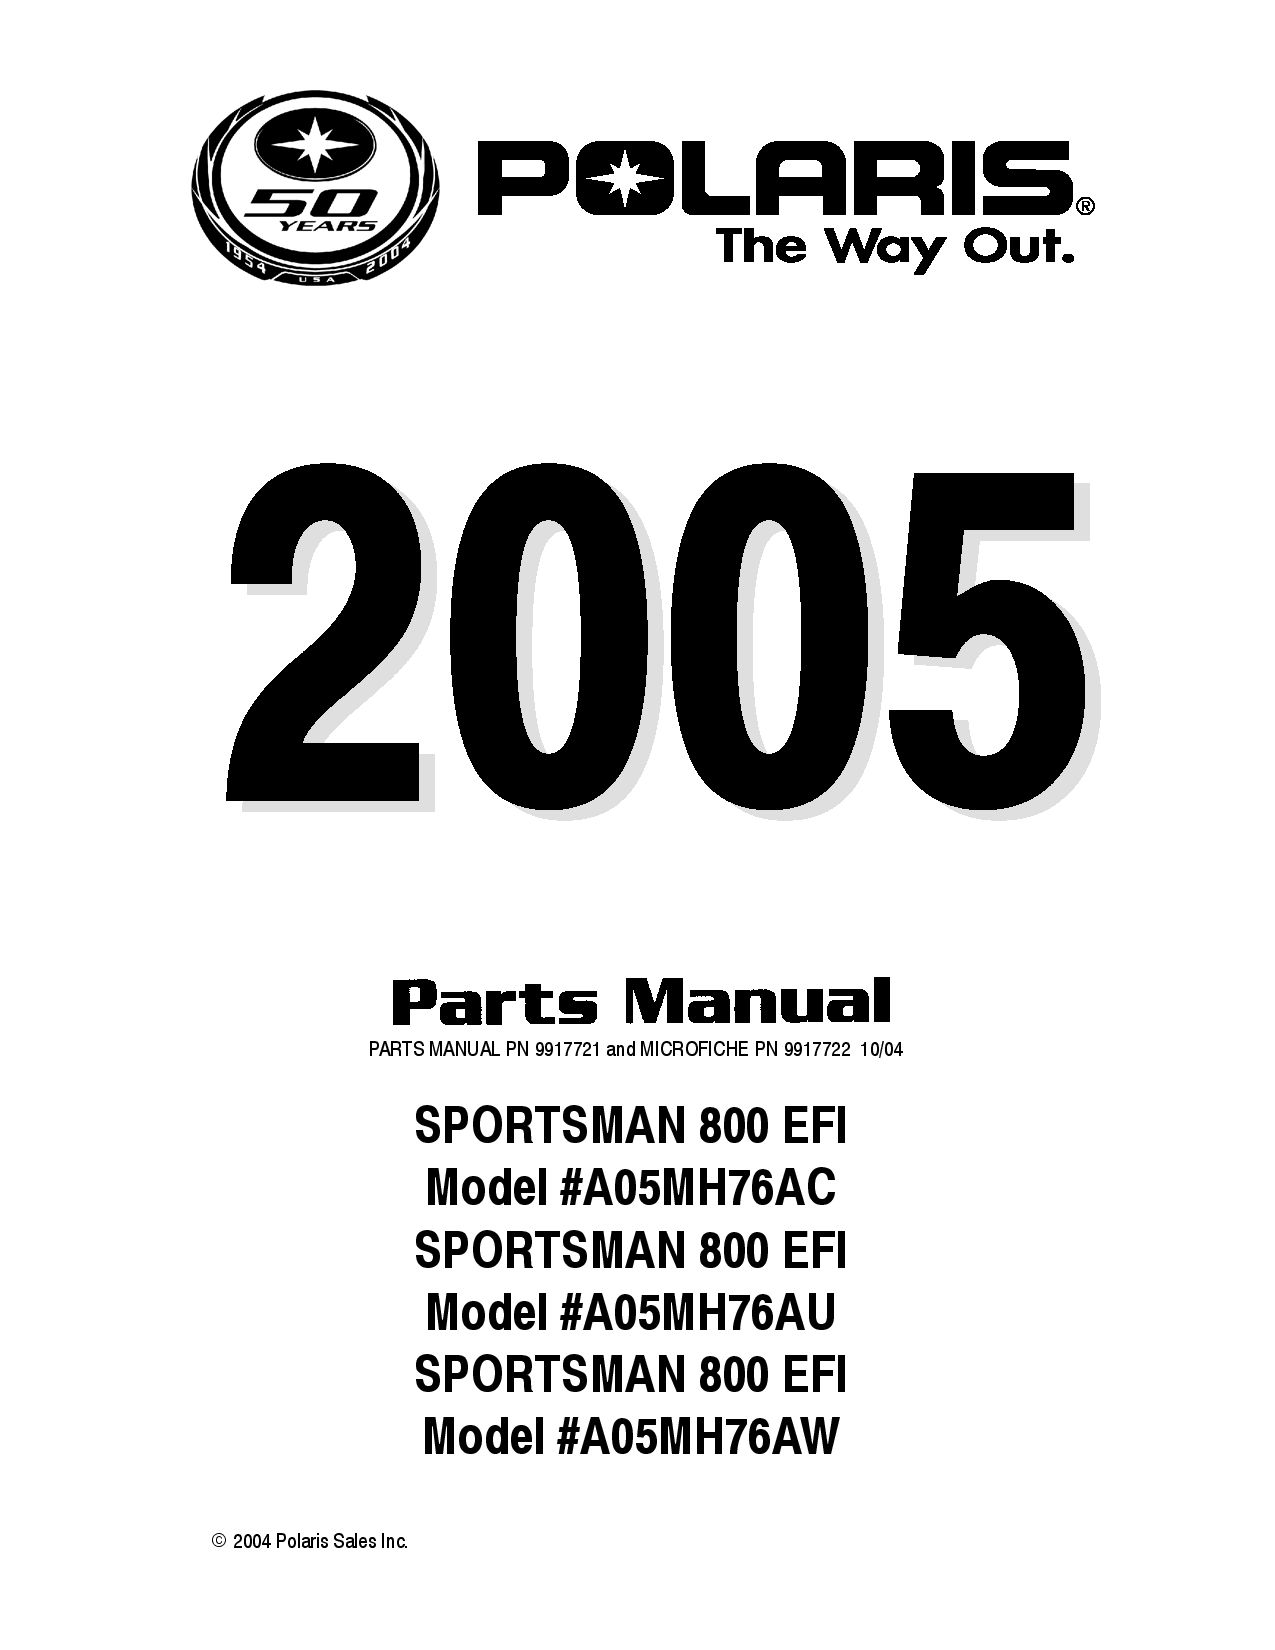 Polaris Sportsman 800 Twin Efi Parts List Pdf Download Service Manual Repair Manual Pdf Download Pdf Download Repair Manuals Manual